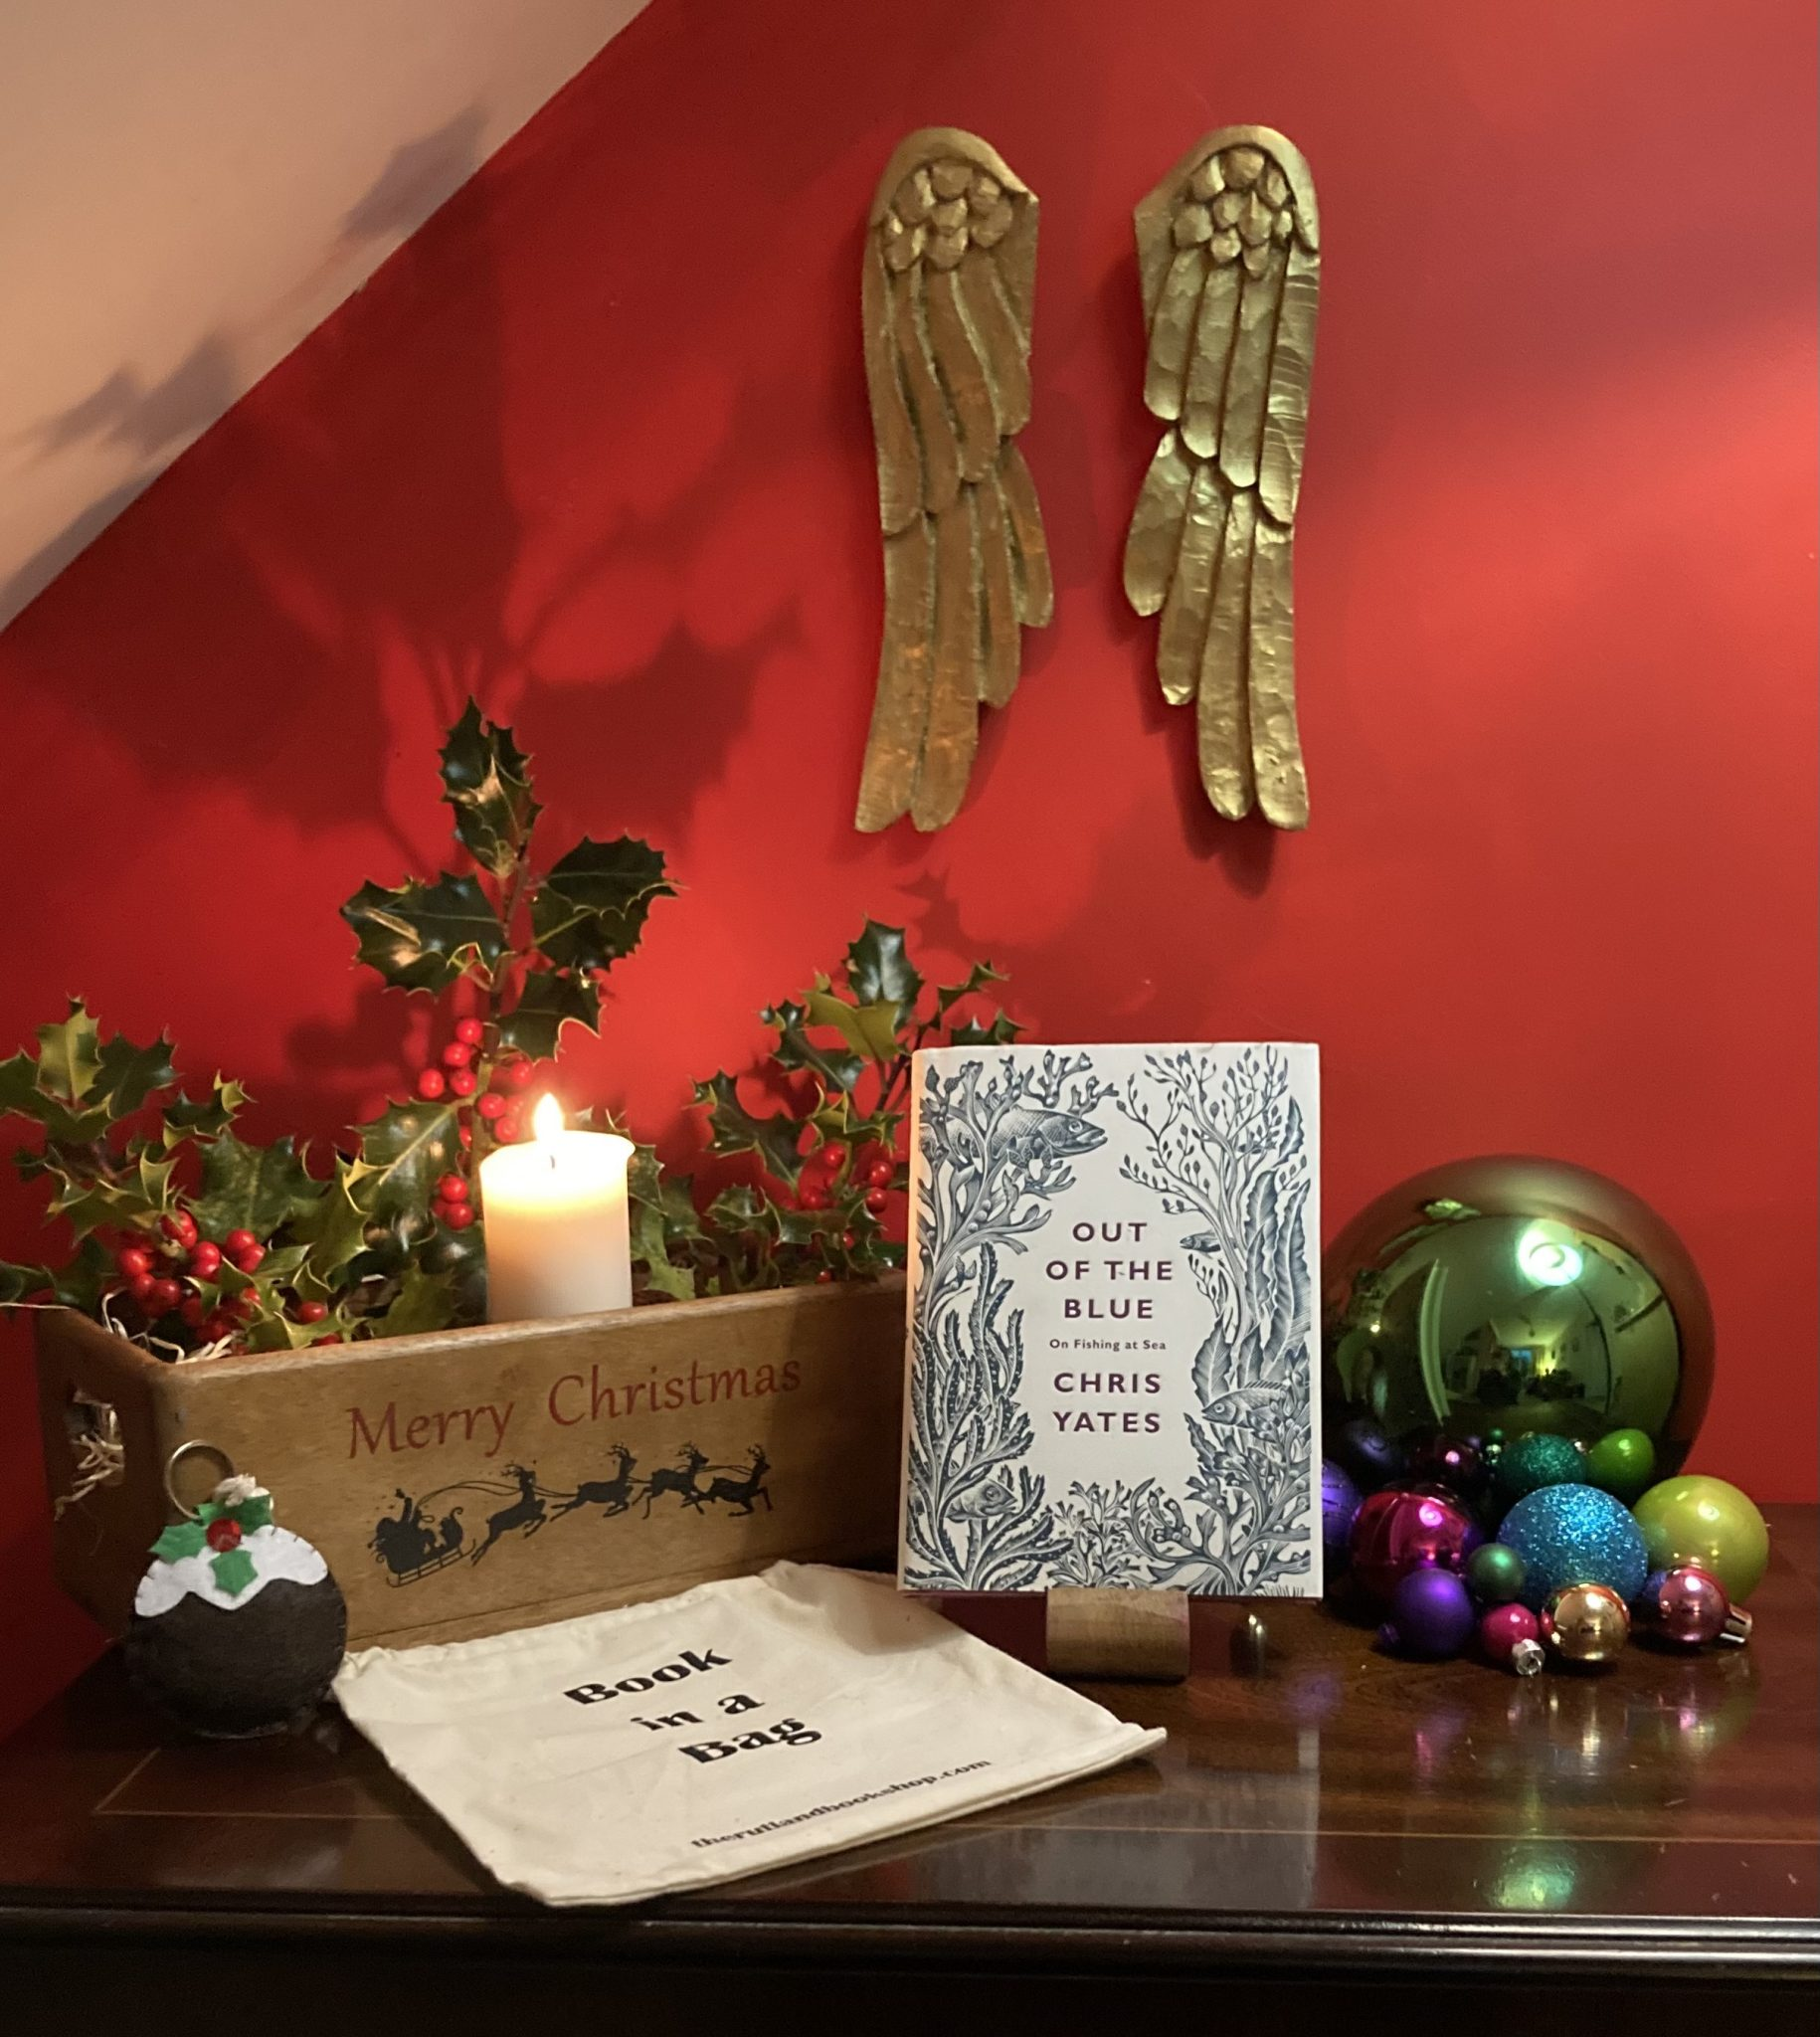 Christmas Book In A Bag: Out Of The Blue